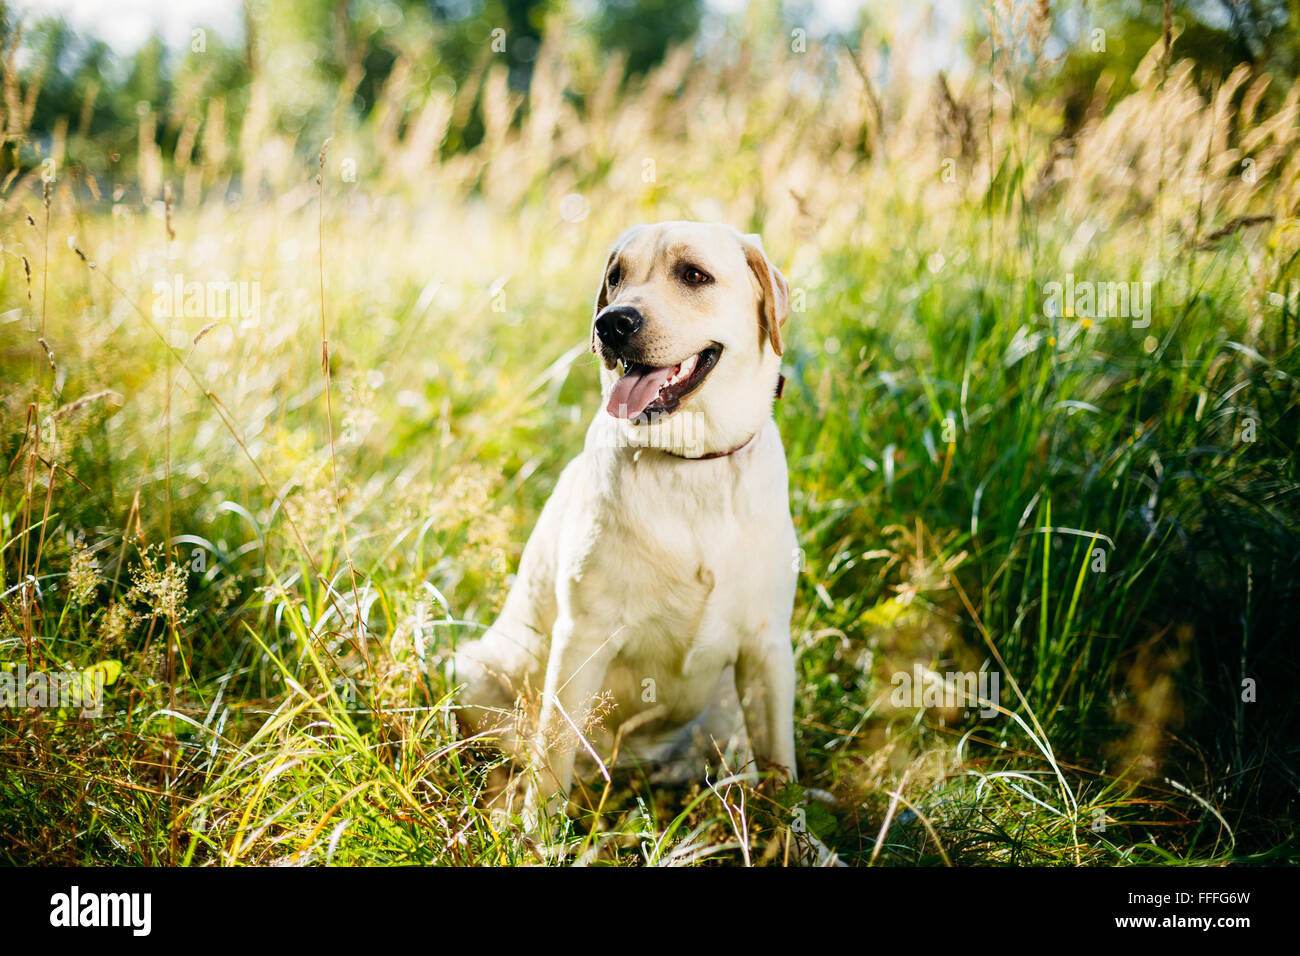 White Labrador Retriever Dog Sitting In Grass, Forest Park Background. - Stock Image